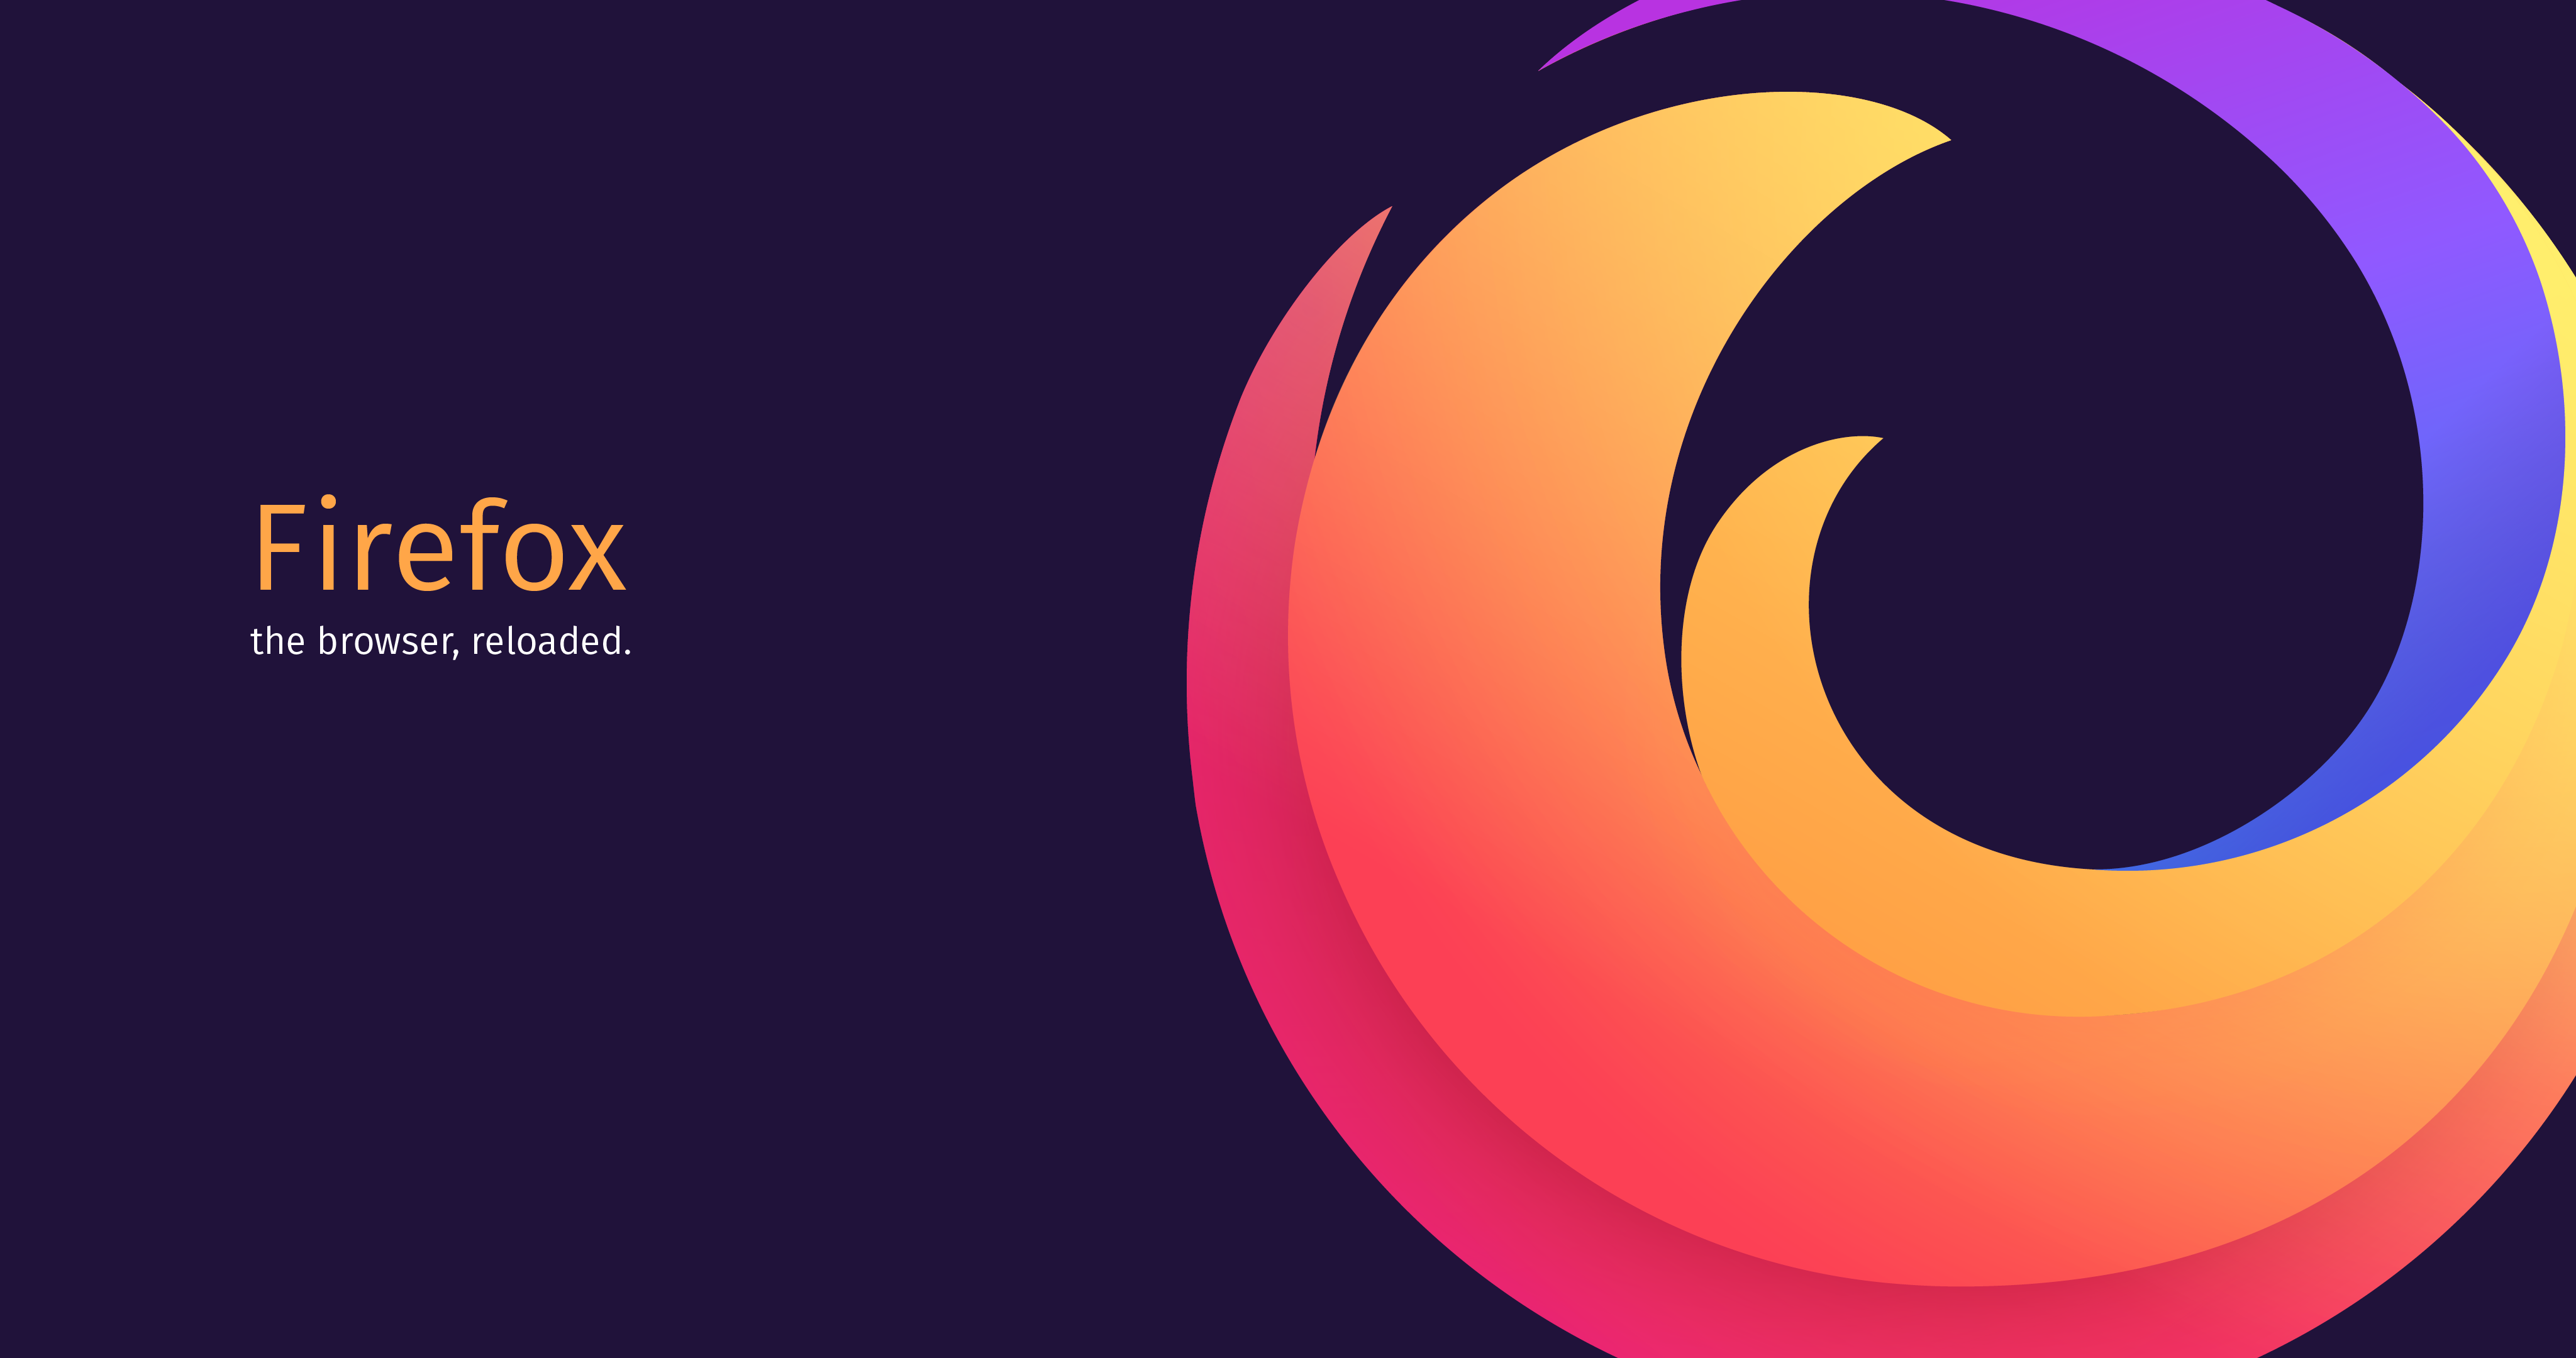 wallpaper for firefox browser